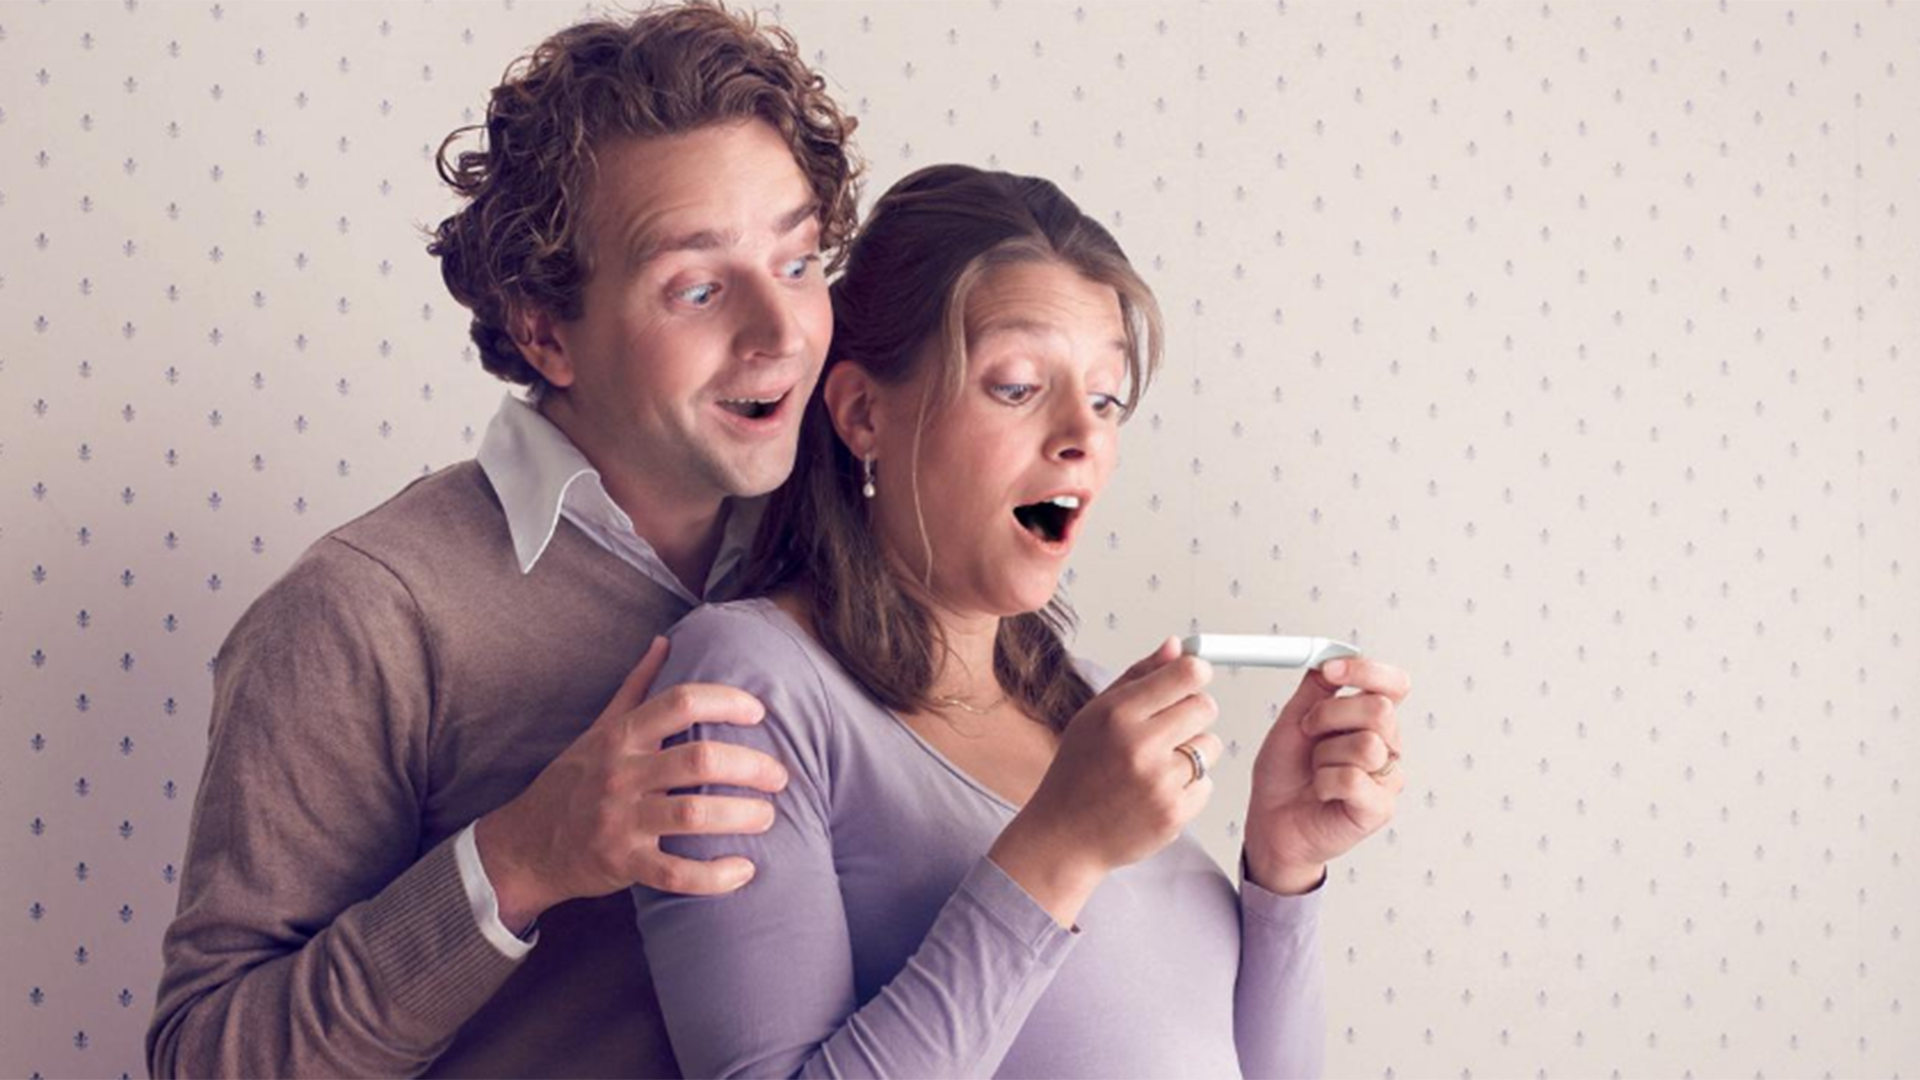 This Hilarious Ad For A Pregnancy Test Has One Glaring Problem